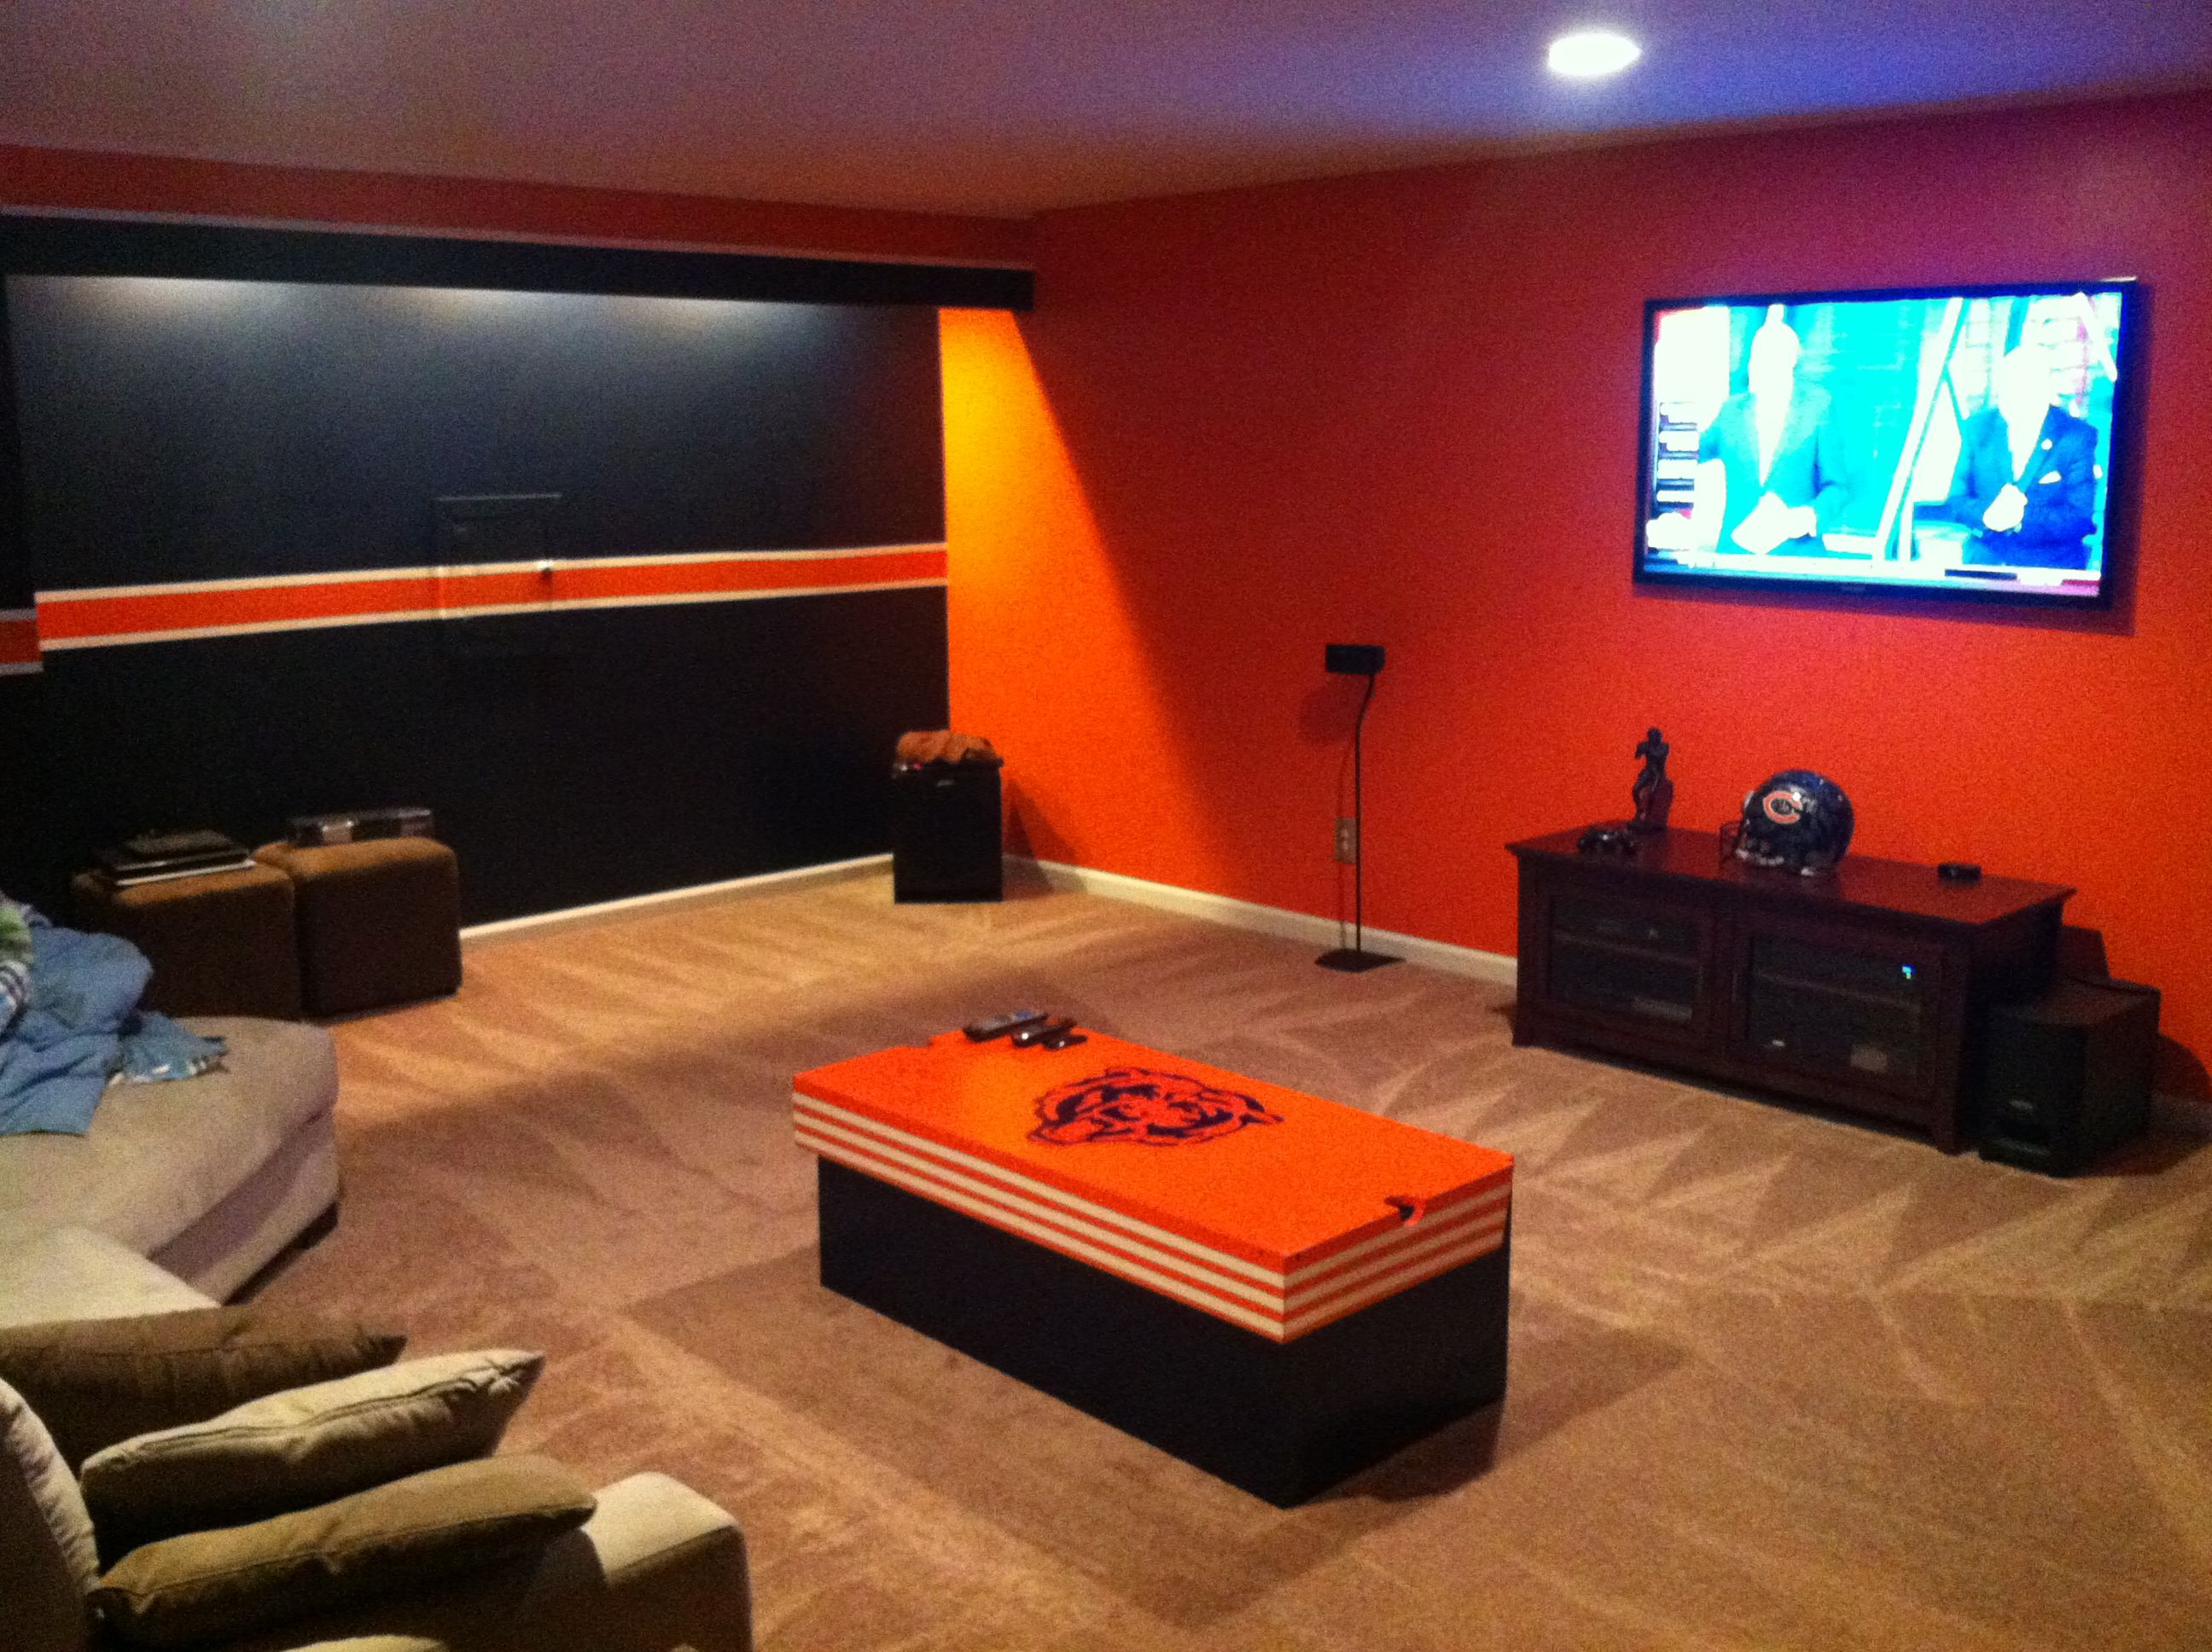 Chicago Man Cave Signs : Chicago bears man cave family sports fun stuff pinterest